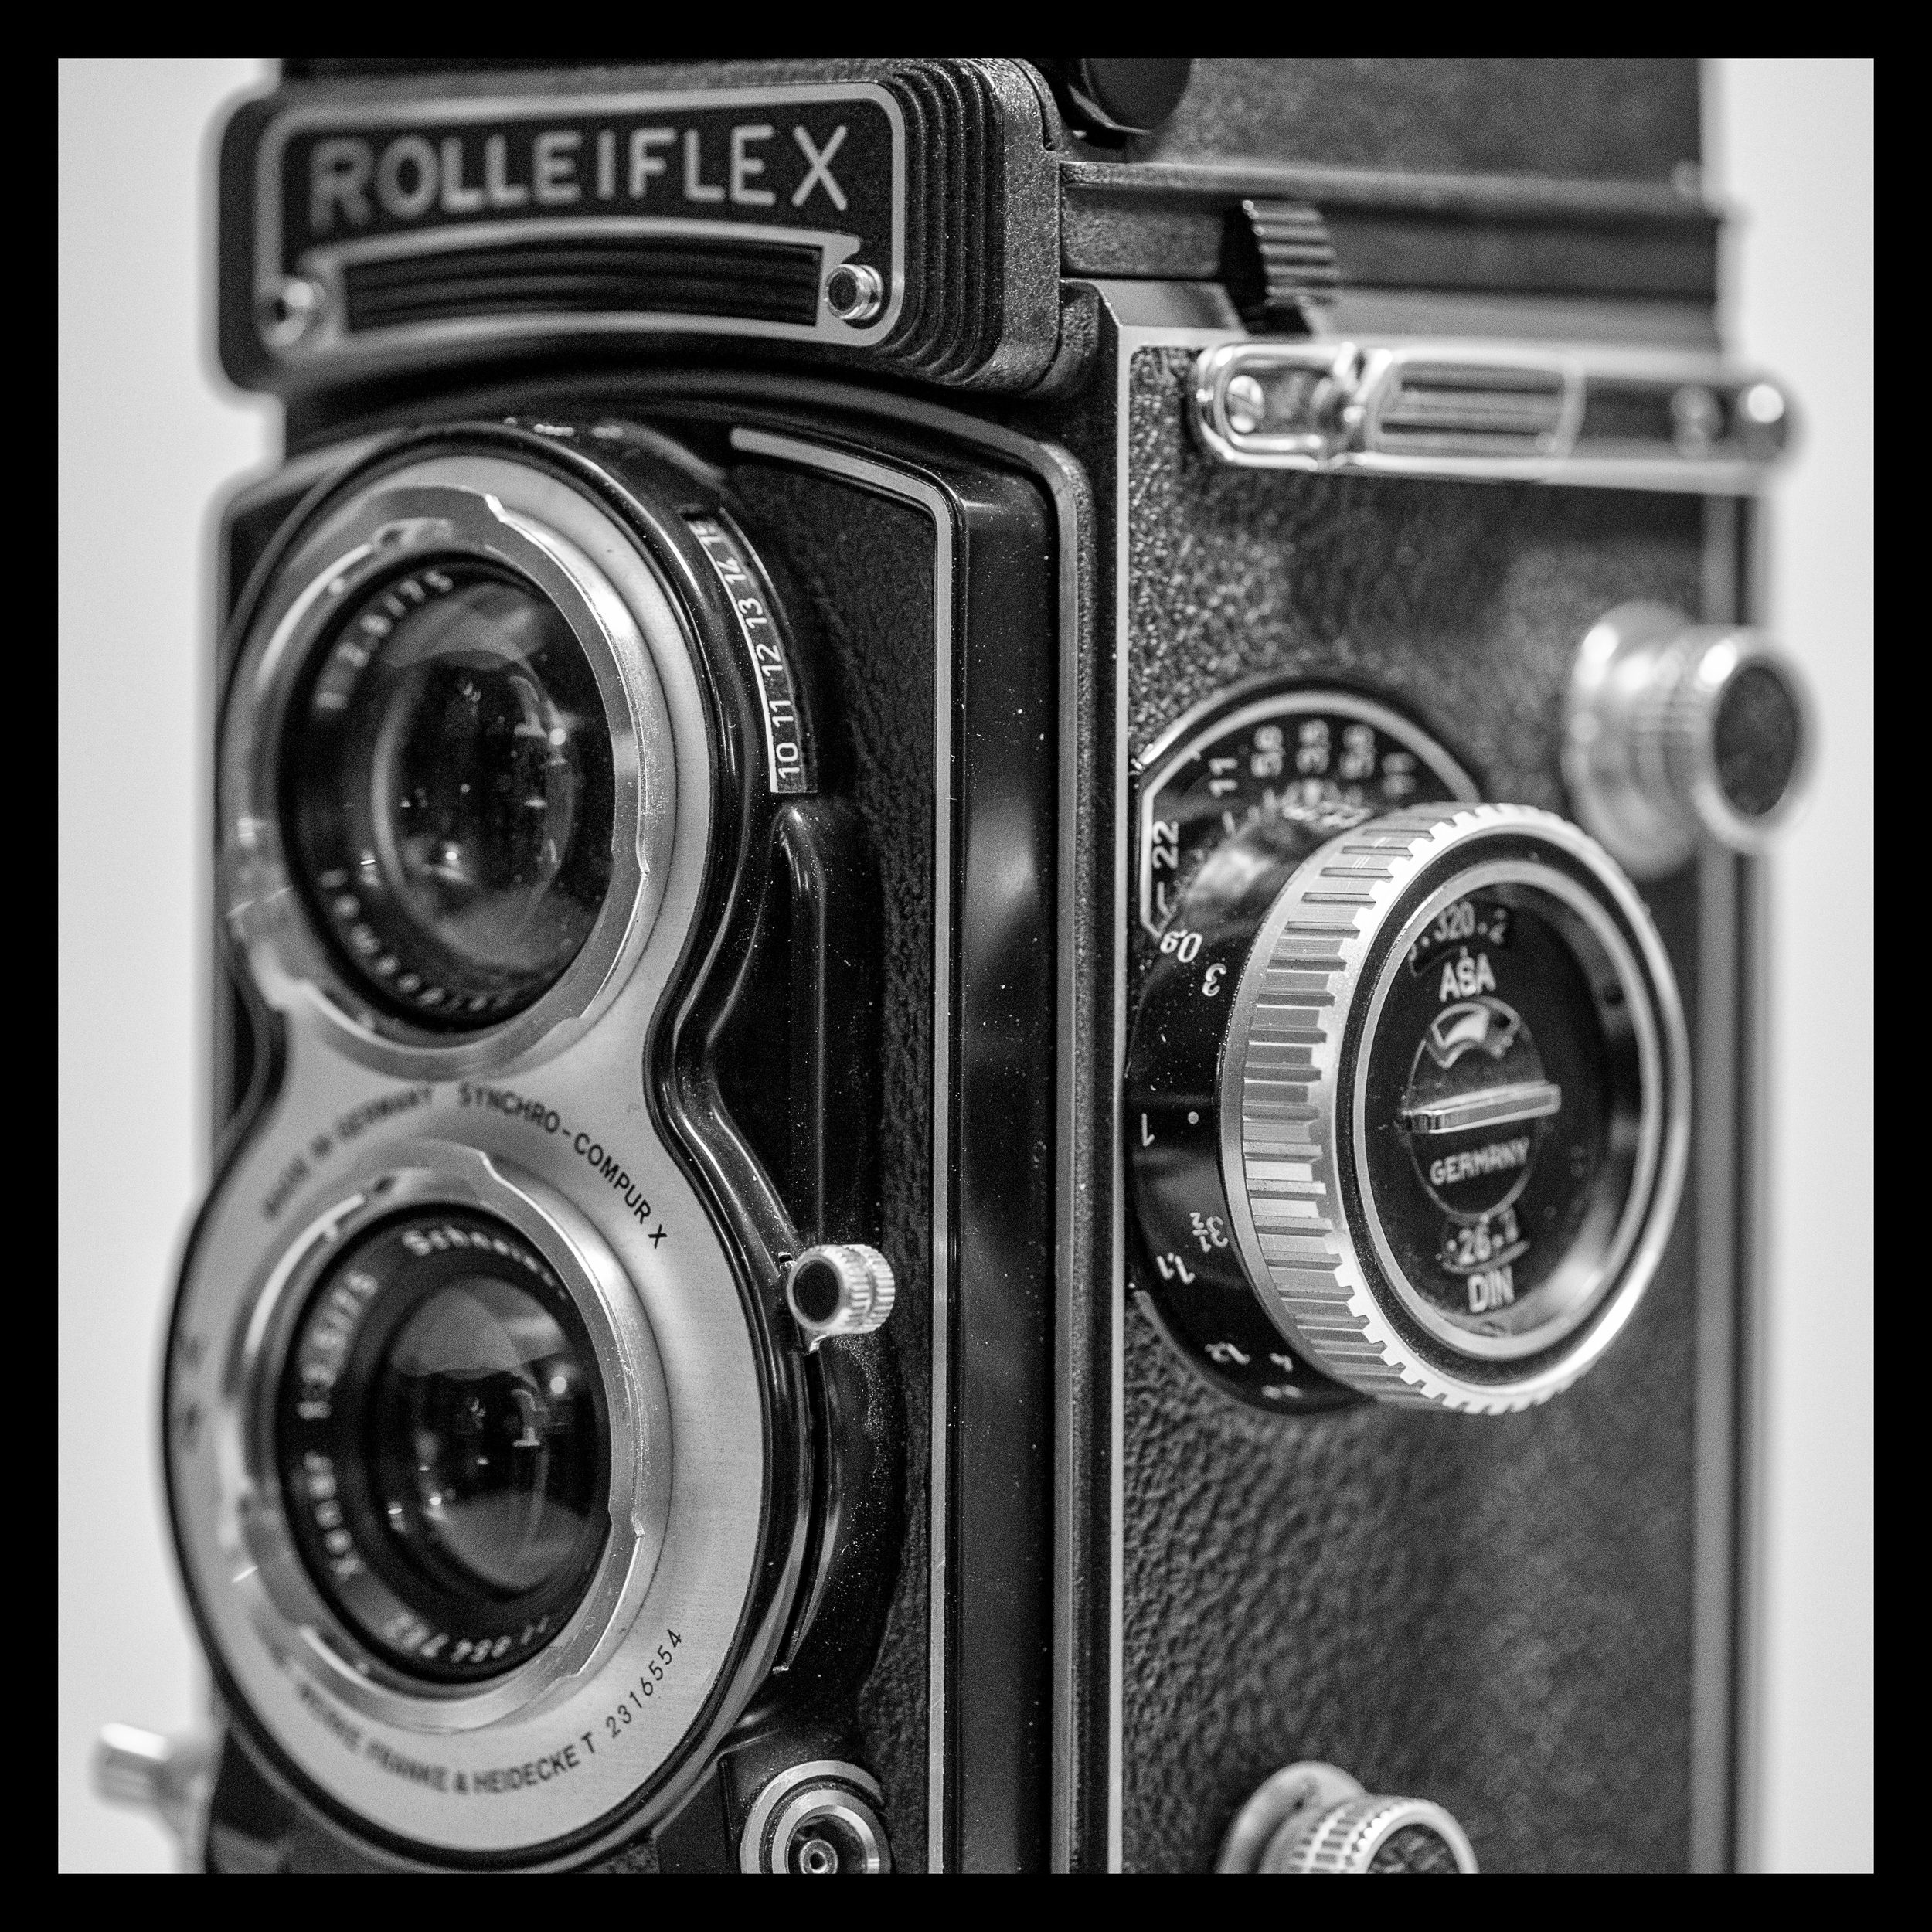 My Rollei T Whiteface - the camera that started my obsession with medium format film photography